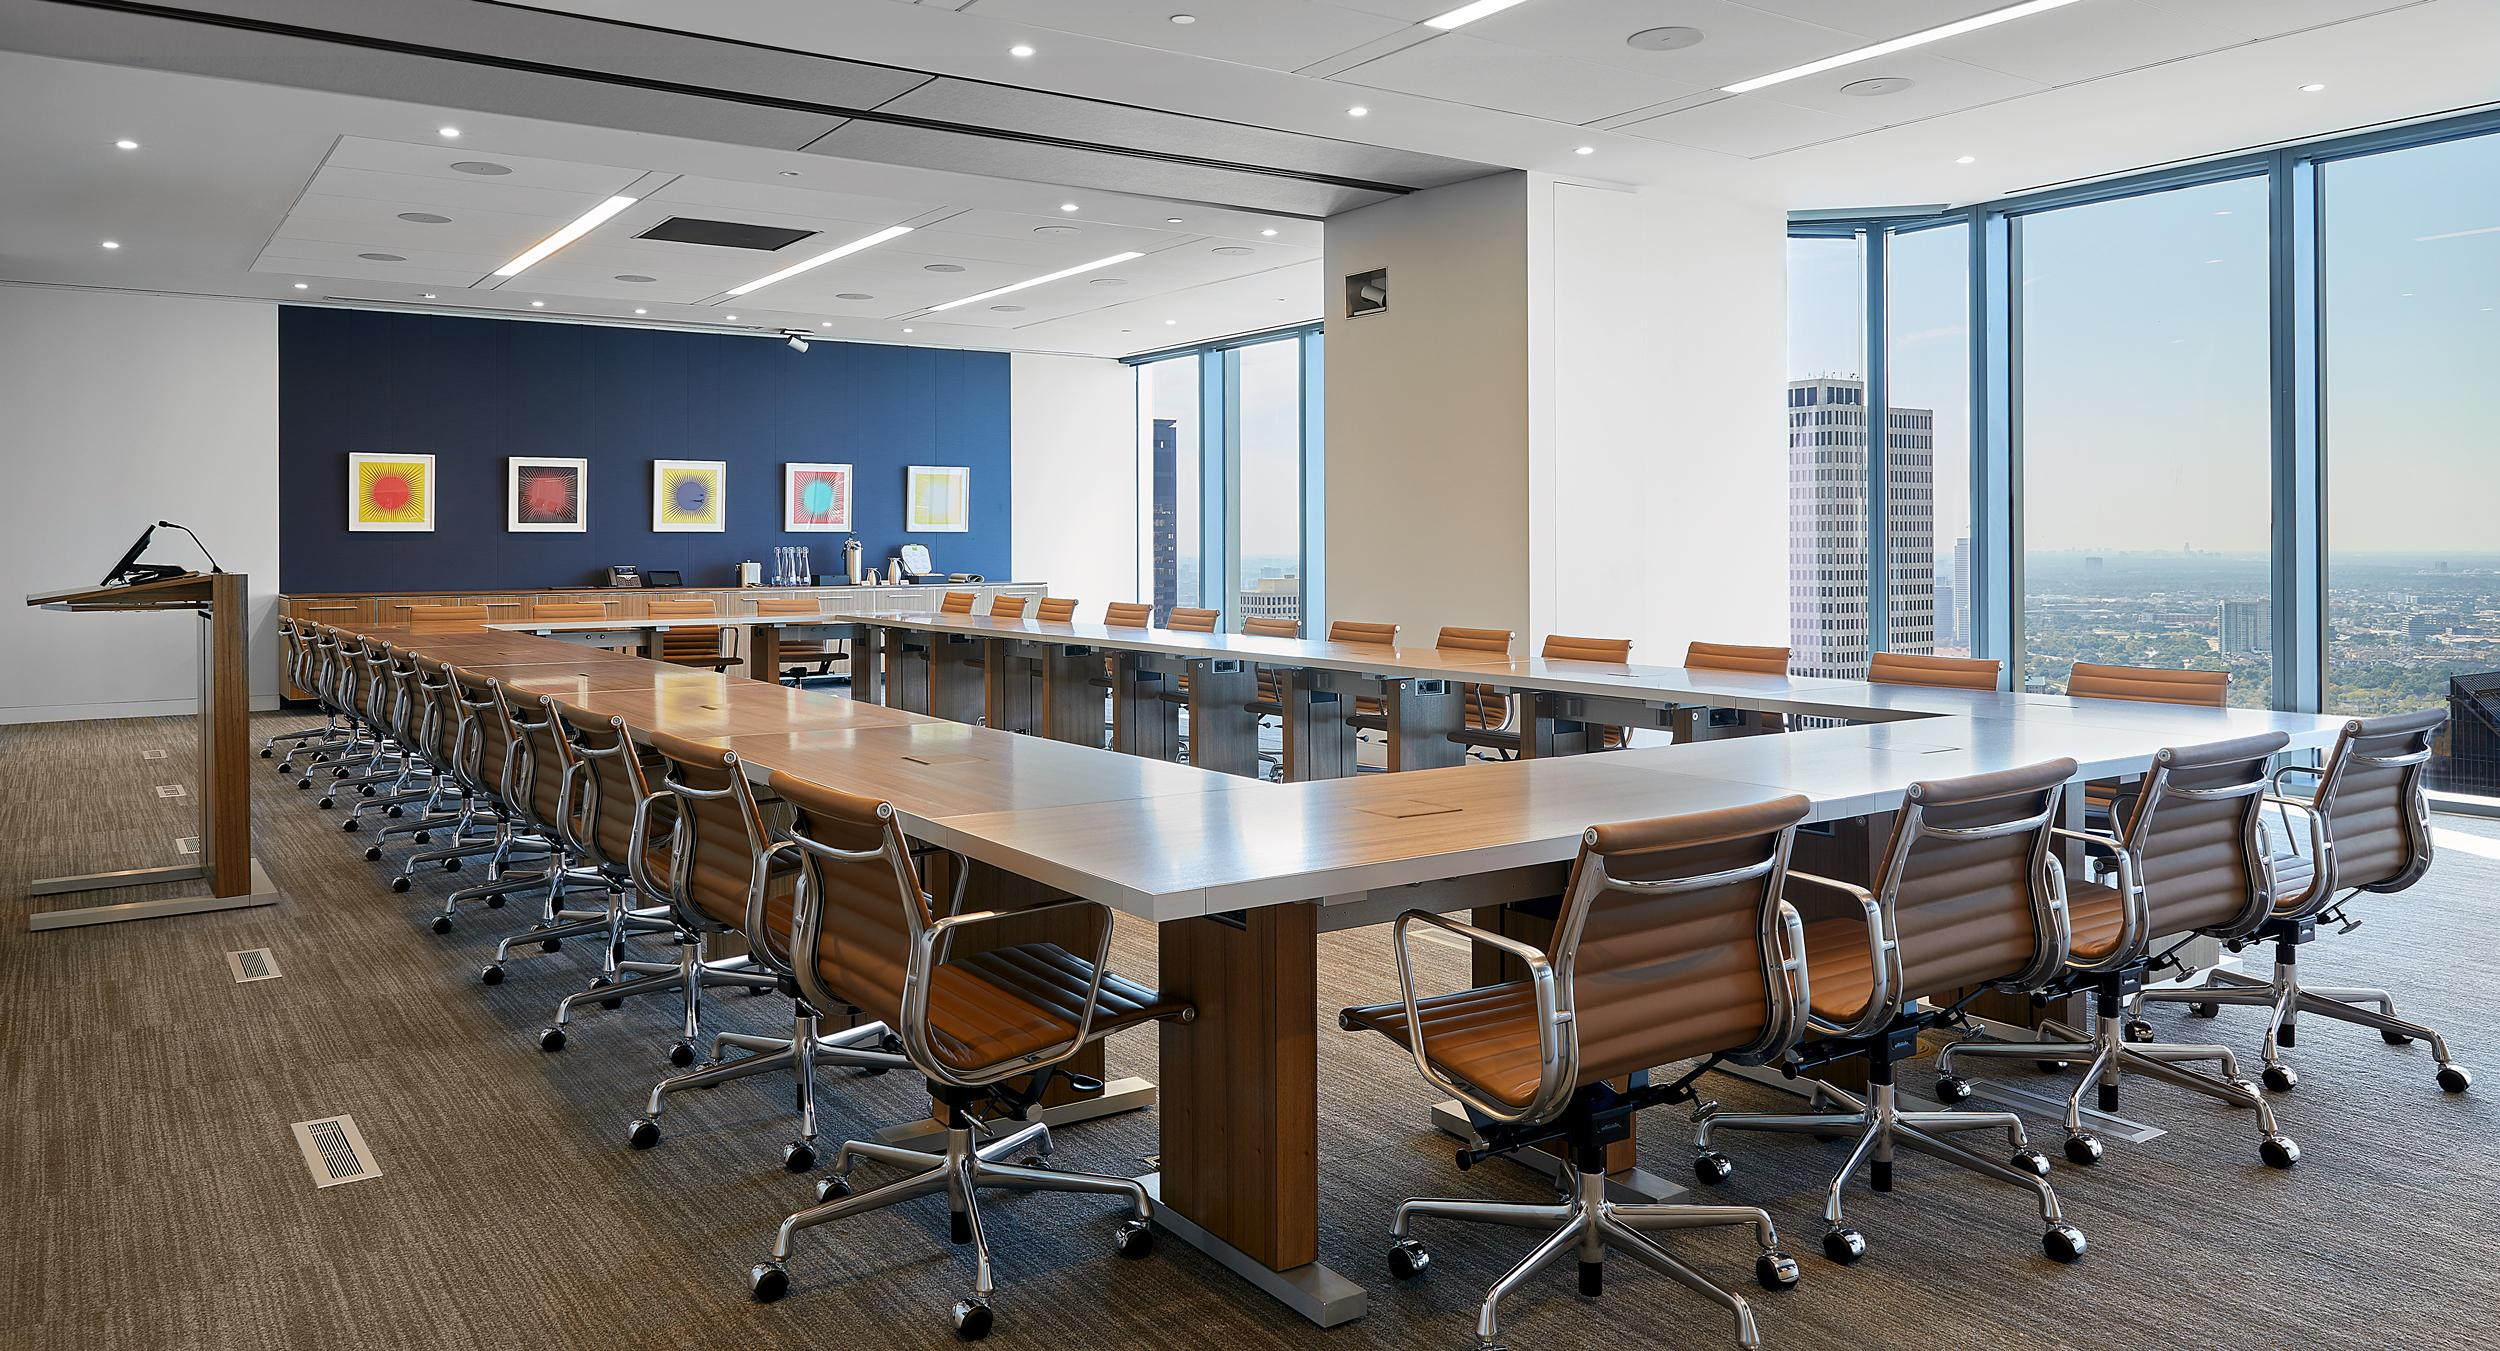 MOTUS tables in Paldao and Brushed Aluminum result in an executive meeting room that is as beautiful as it is functional.